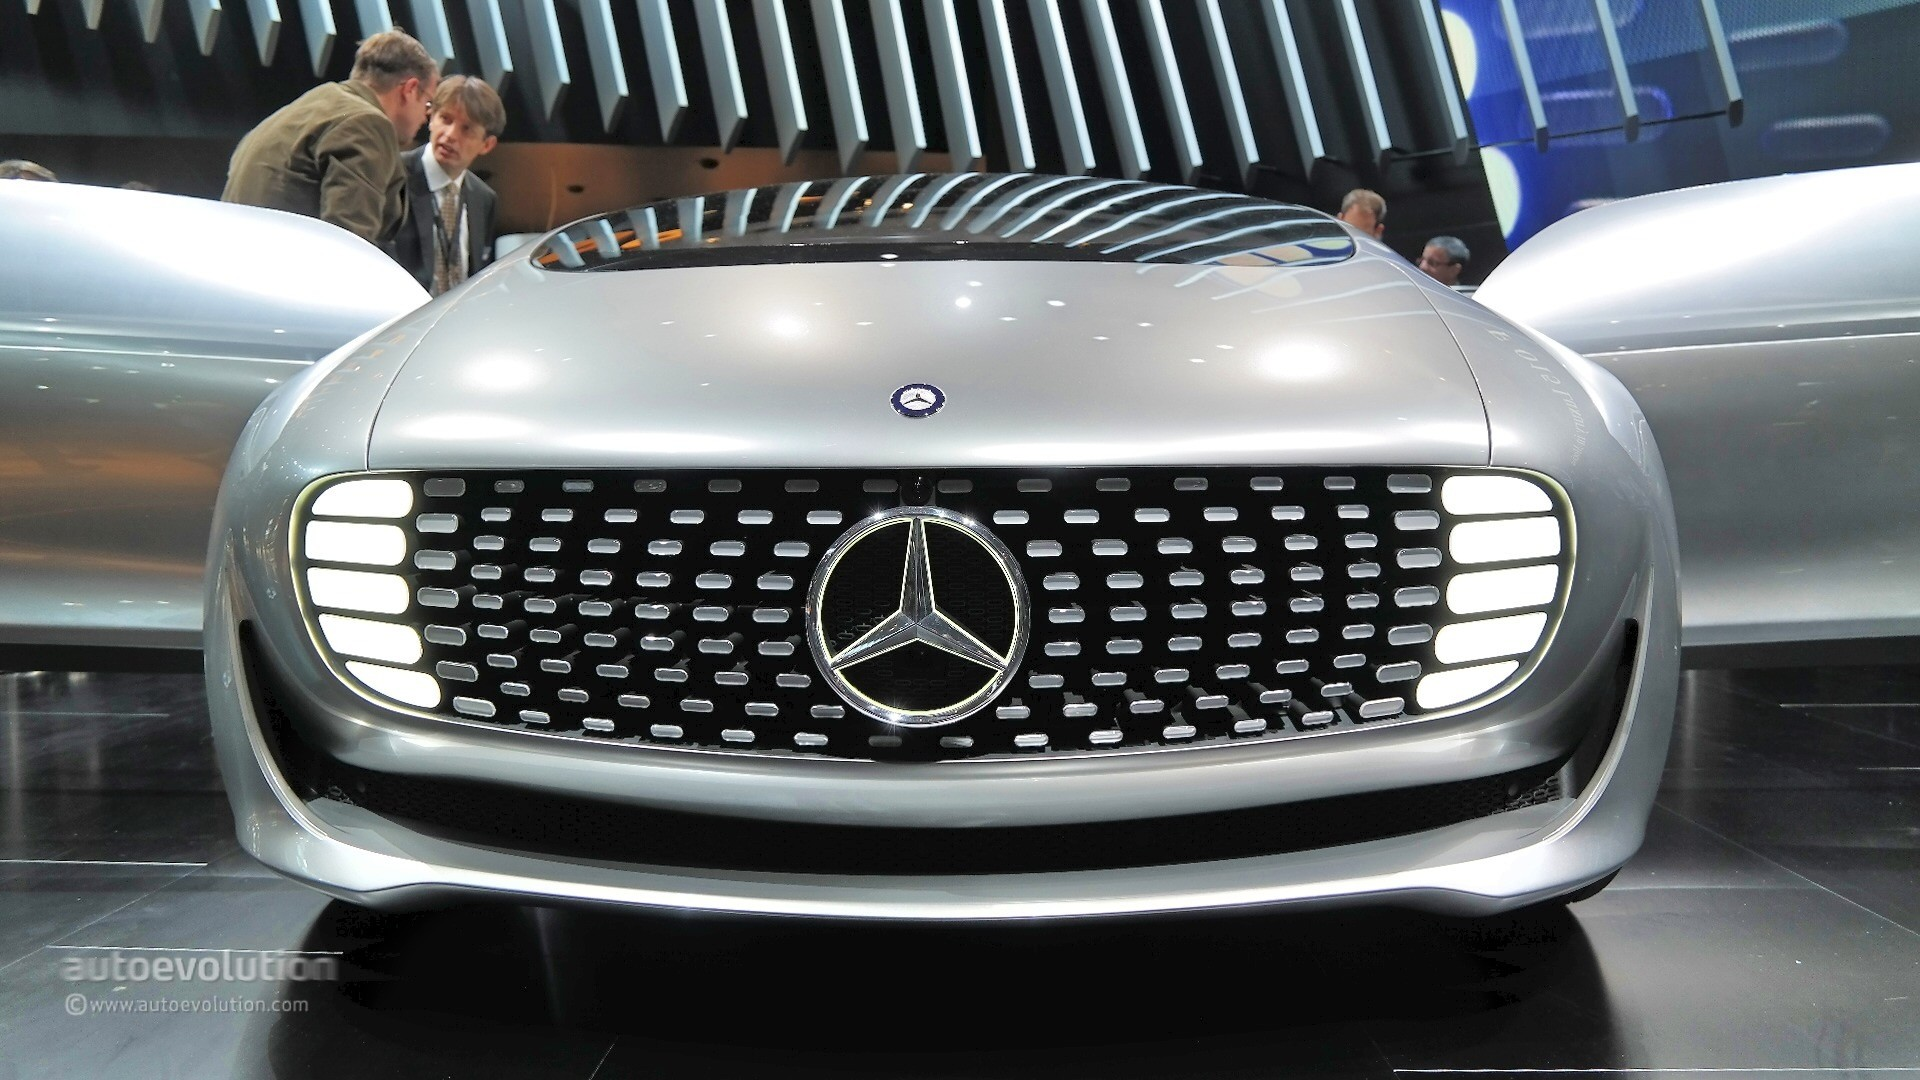 Mercedes Claims Cars Wont Change Drastically in Design Due to New